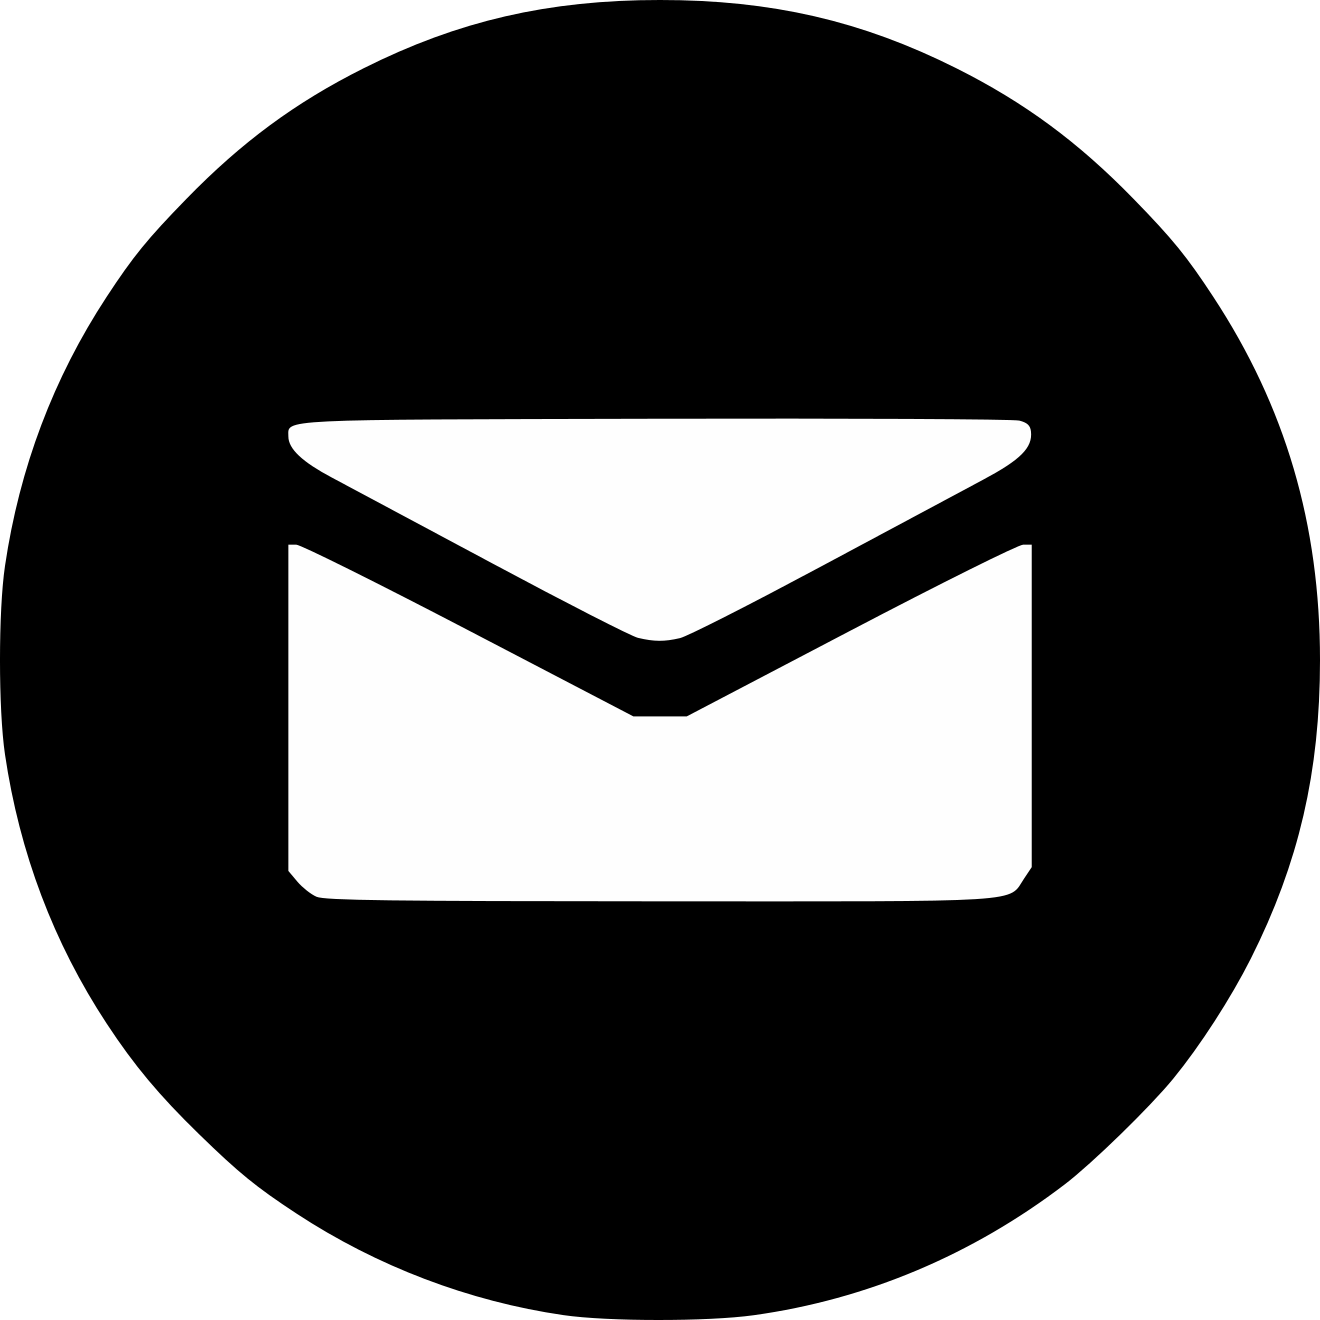 kisspng-email-computer-icons-logo-mail-or-feedback-icon-5ae1d3768d6882.6614143415247491745792.png